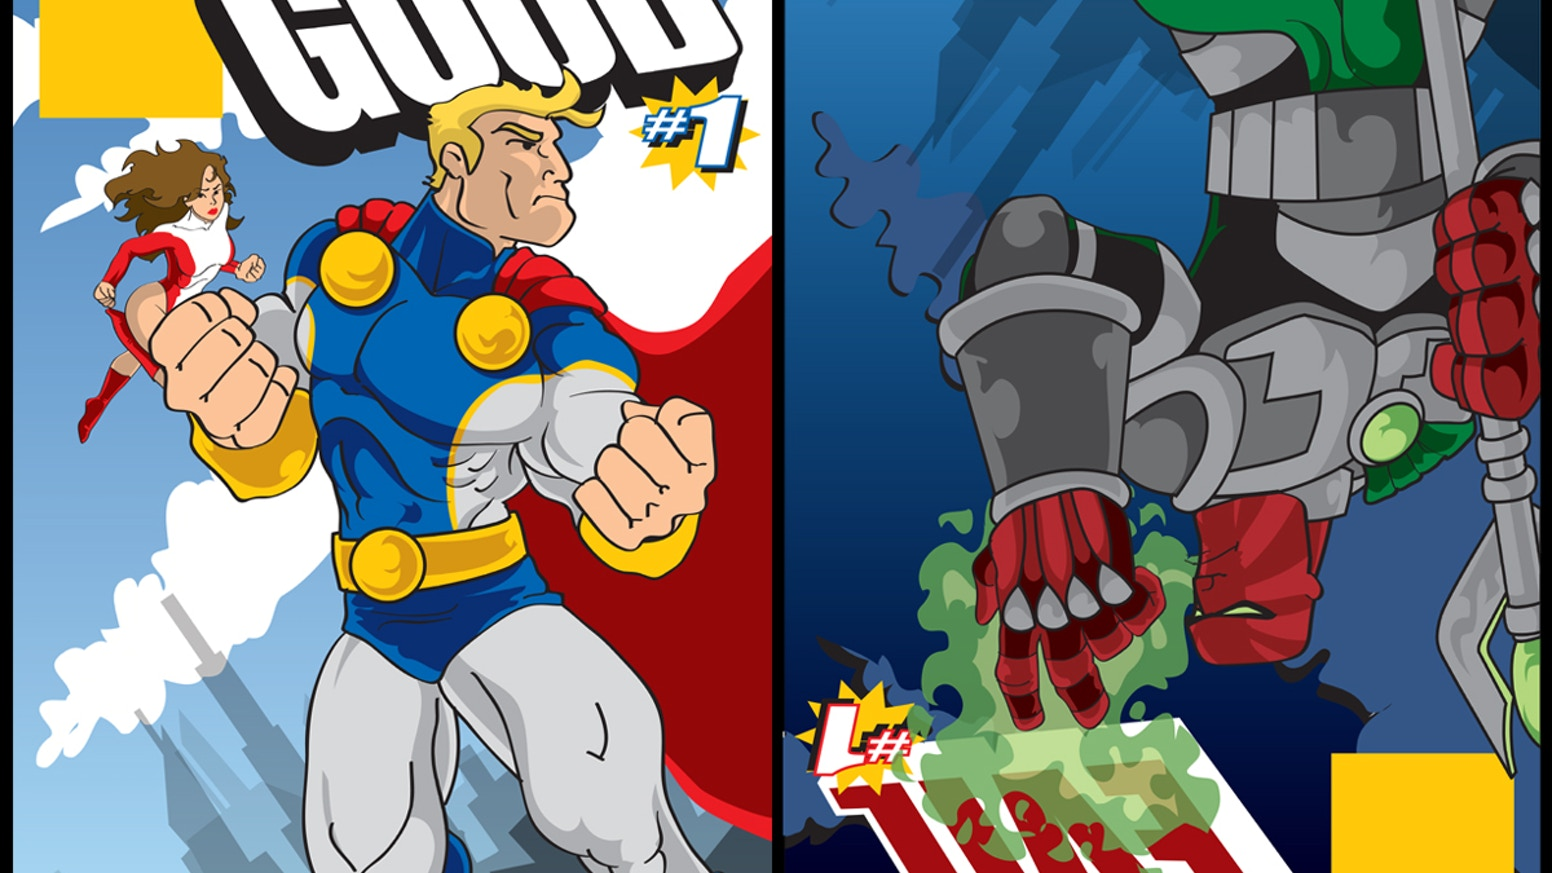 The Side of Good...The Side of Evil - A Superhero/Supervillain Flipbook Anthology. Which side is your allegiance to?